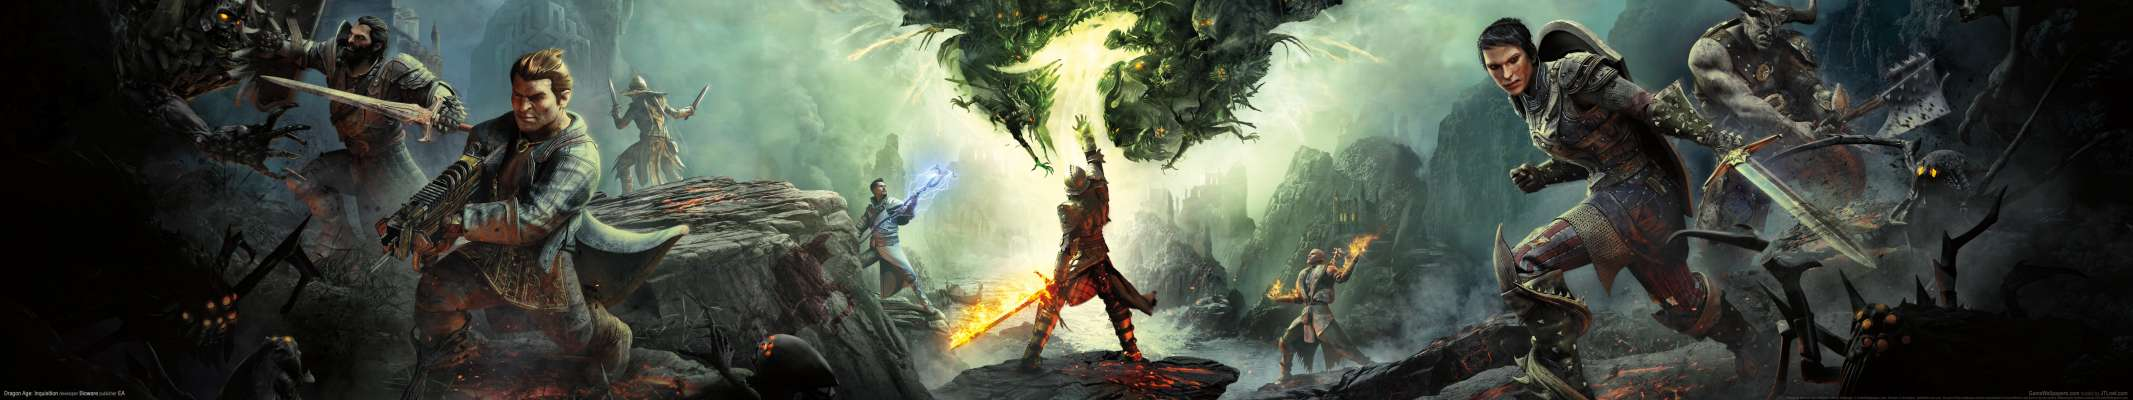 Dragon Age: Inquisition triple screen fond d'écran